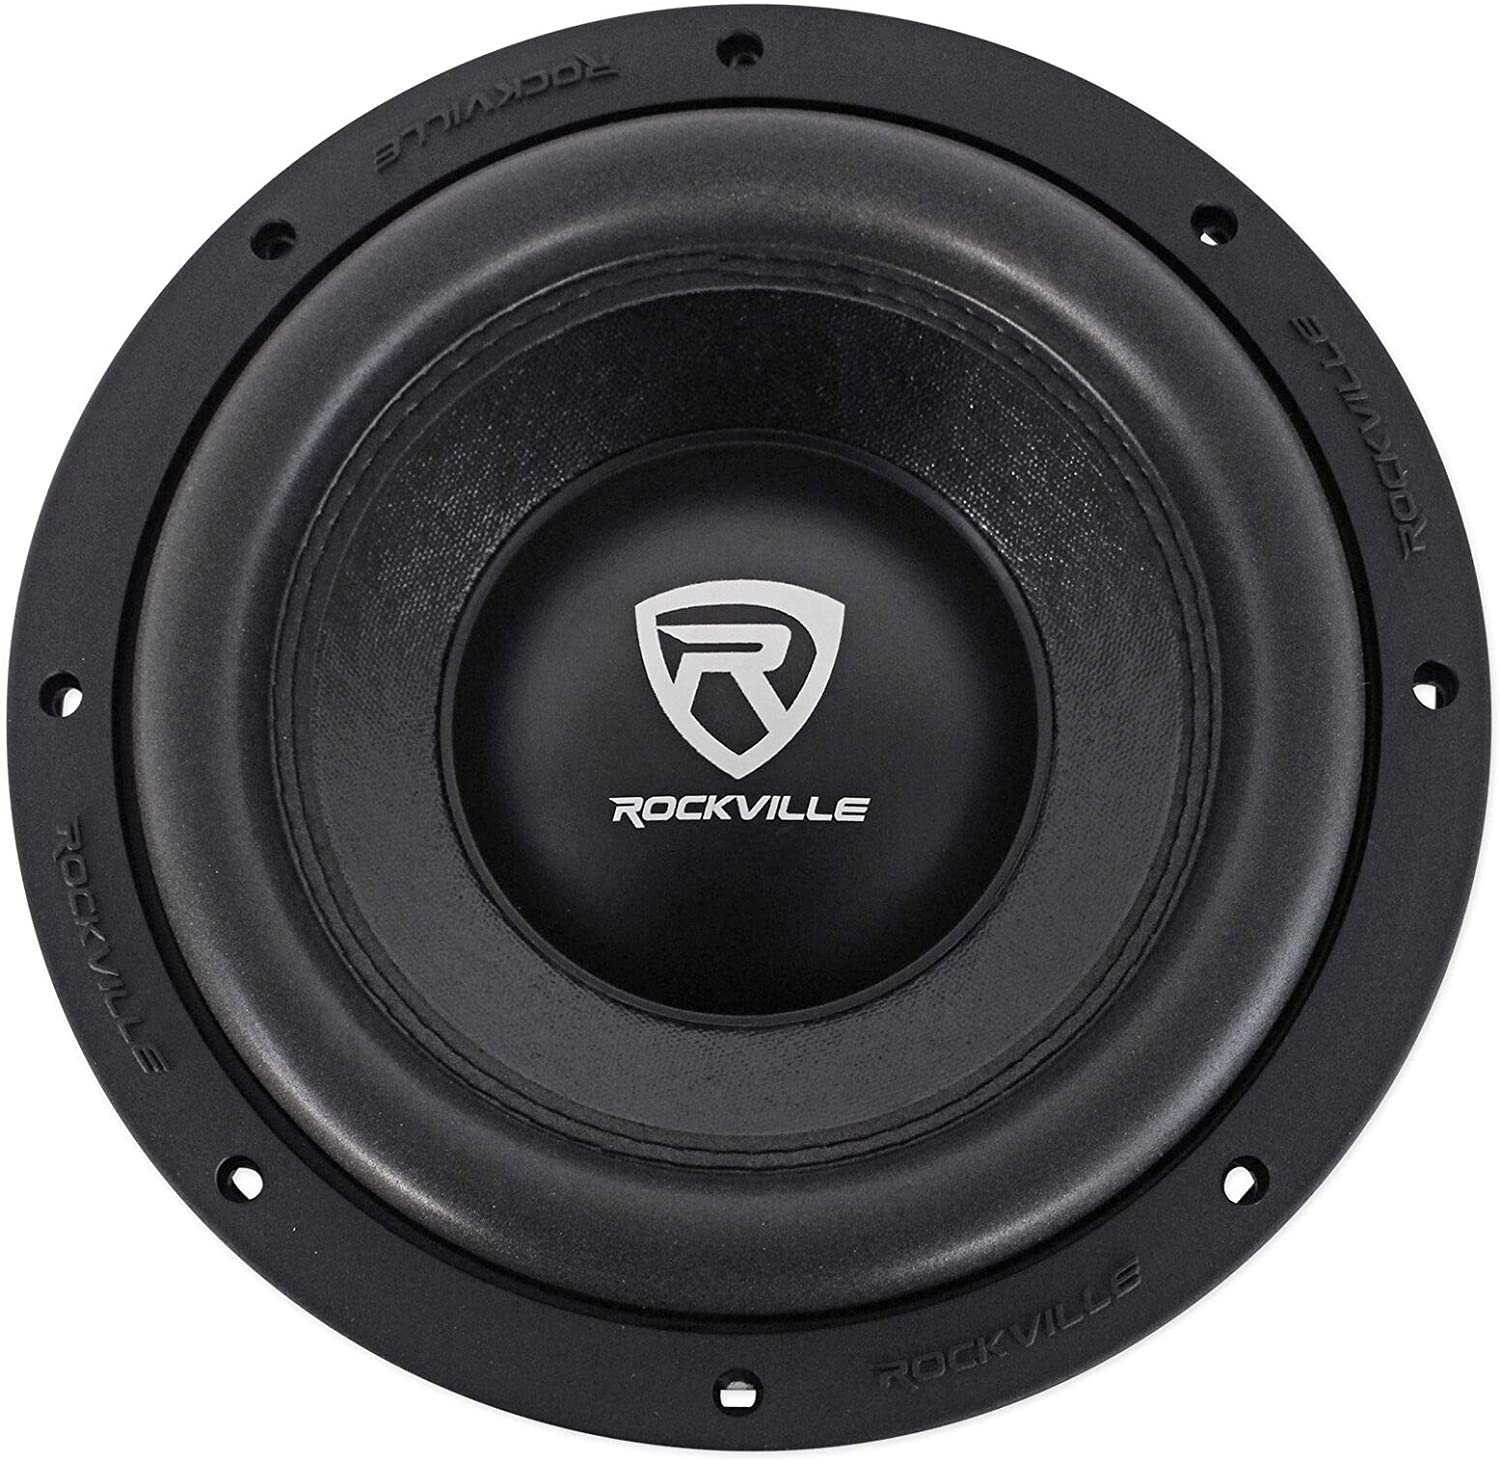 Best 10-inch Subwoofer for Deep Bass